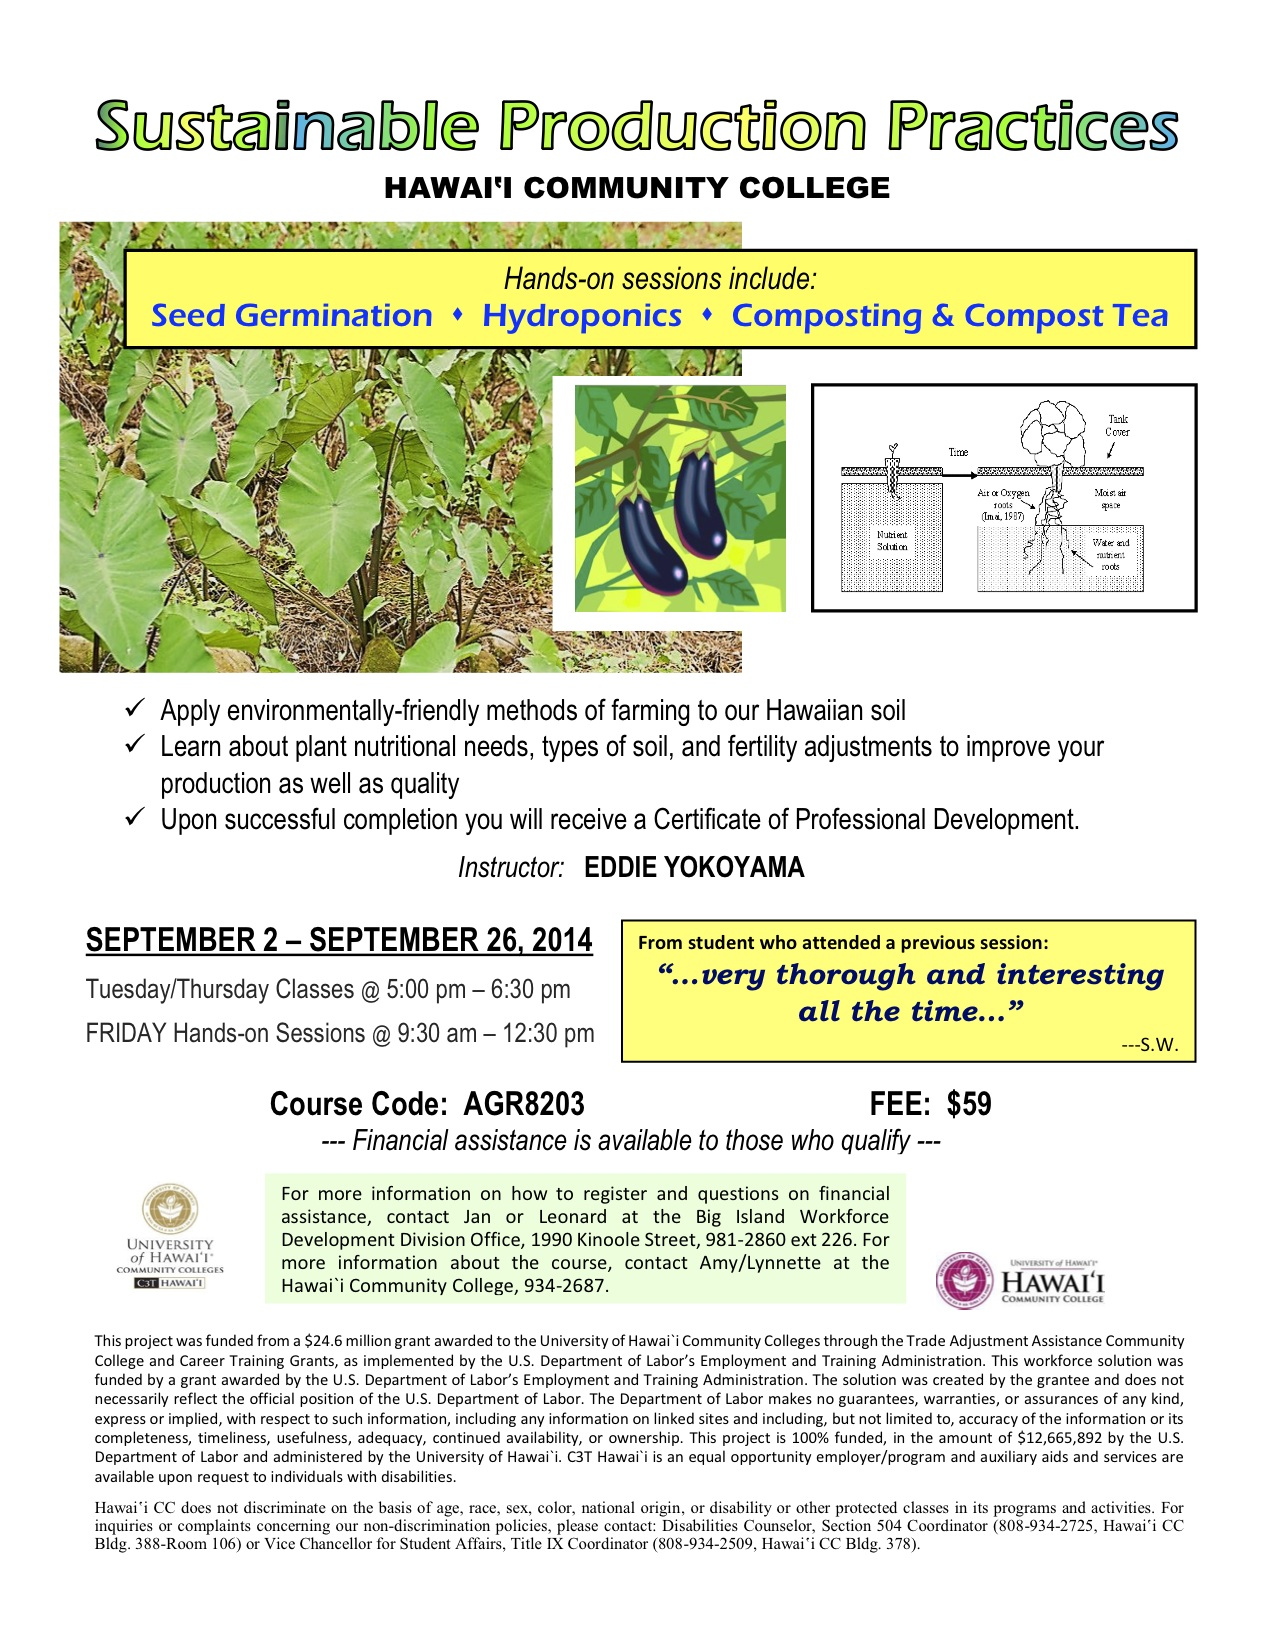 September Hcc Course Sustainable Production Practices Hmkua Ag